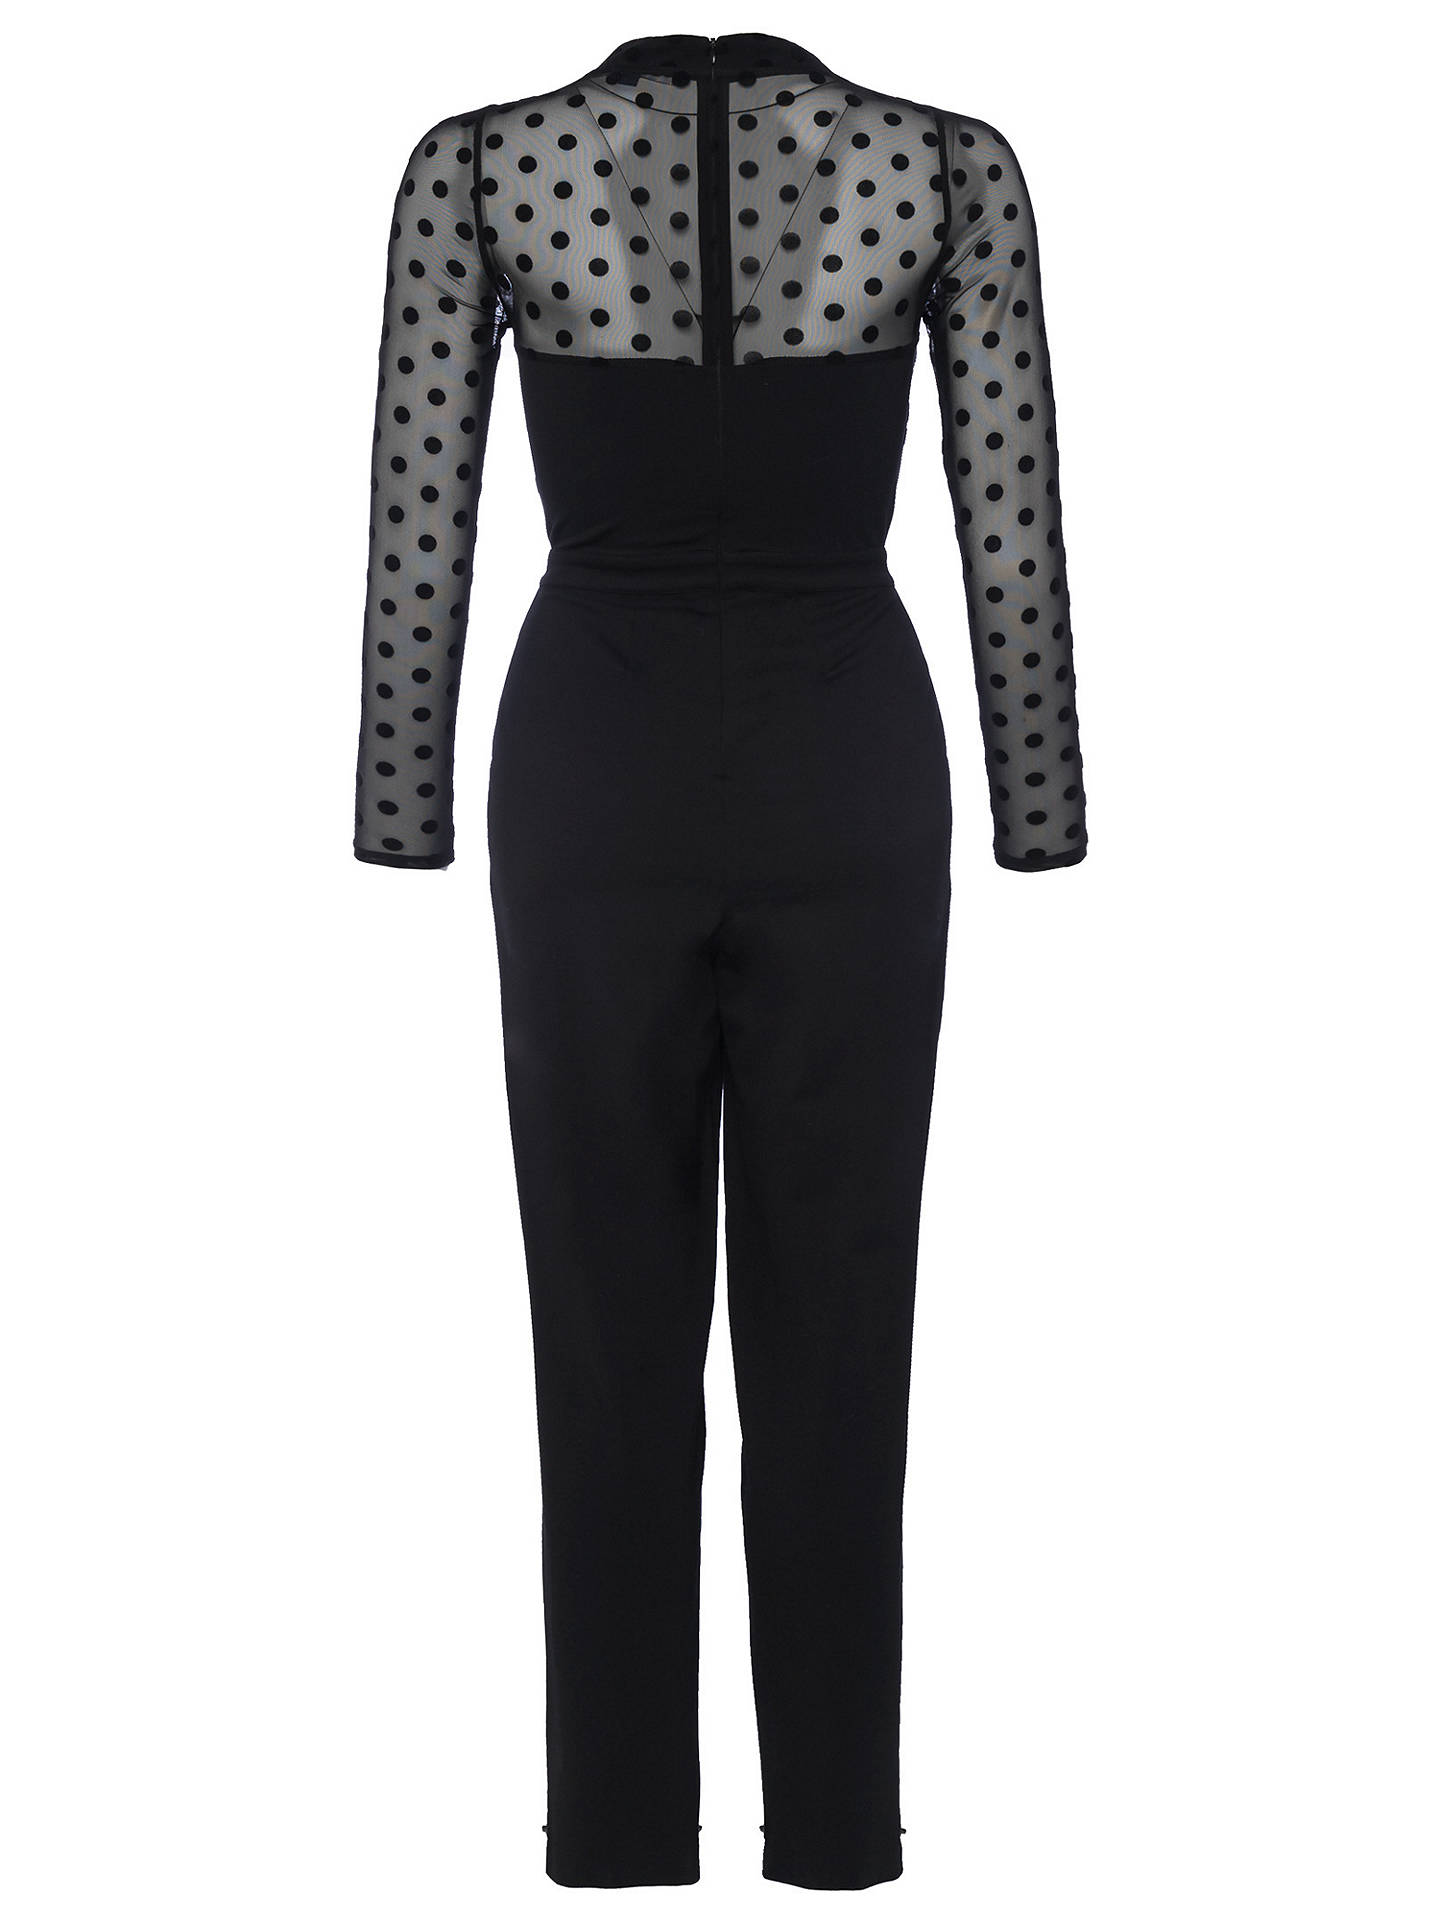 074a7ac3e20 Buy French Connection Lea Mesh High Neck Jumpsuit, Black, 6 Online at  johnlewis.